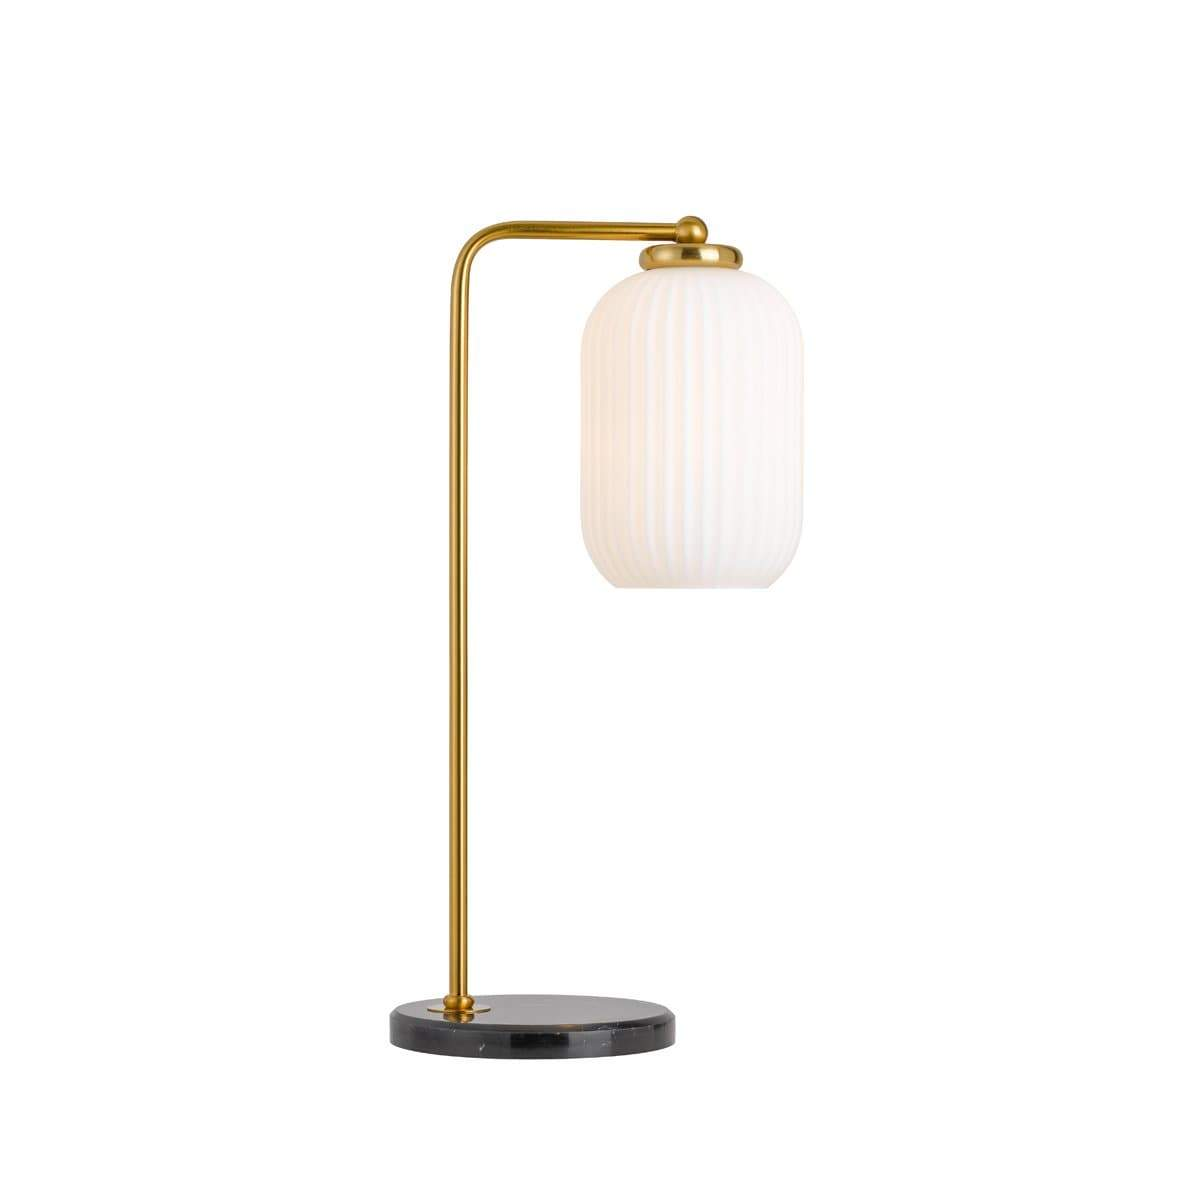 Lark Table Lamp lighting shops lighting stores LED lights  lighting designer